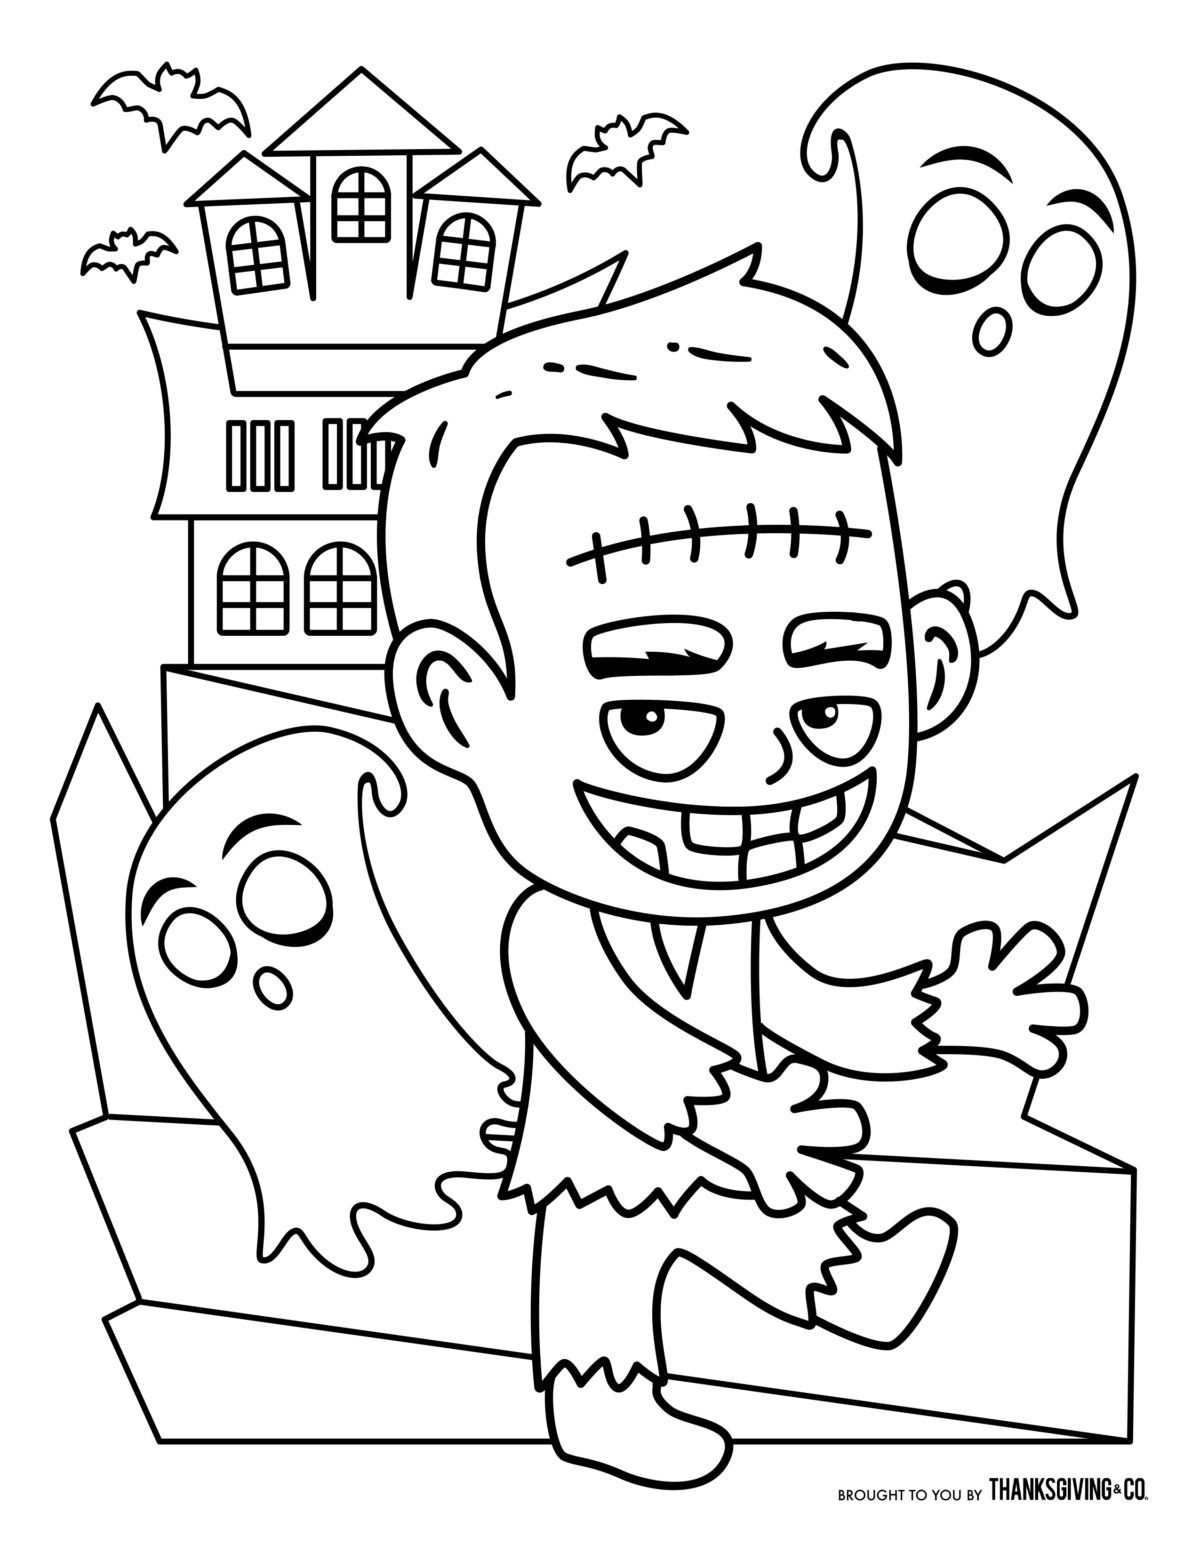 Free Halloween Coloring Pages For Kids Or For The Kid In You Free Halloween Coloring Pages Halloween Coloring Pages Halloween Coloring Pages Printable